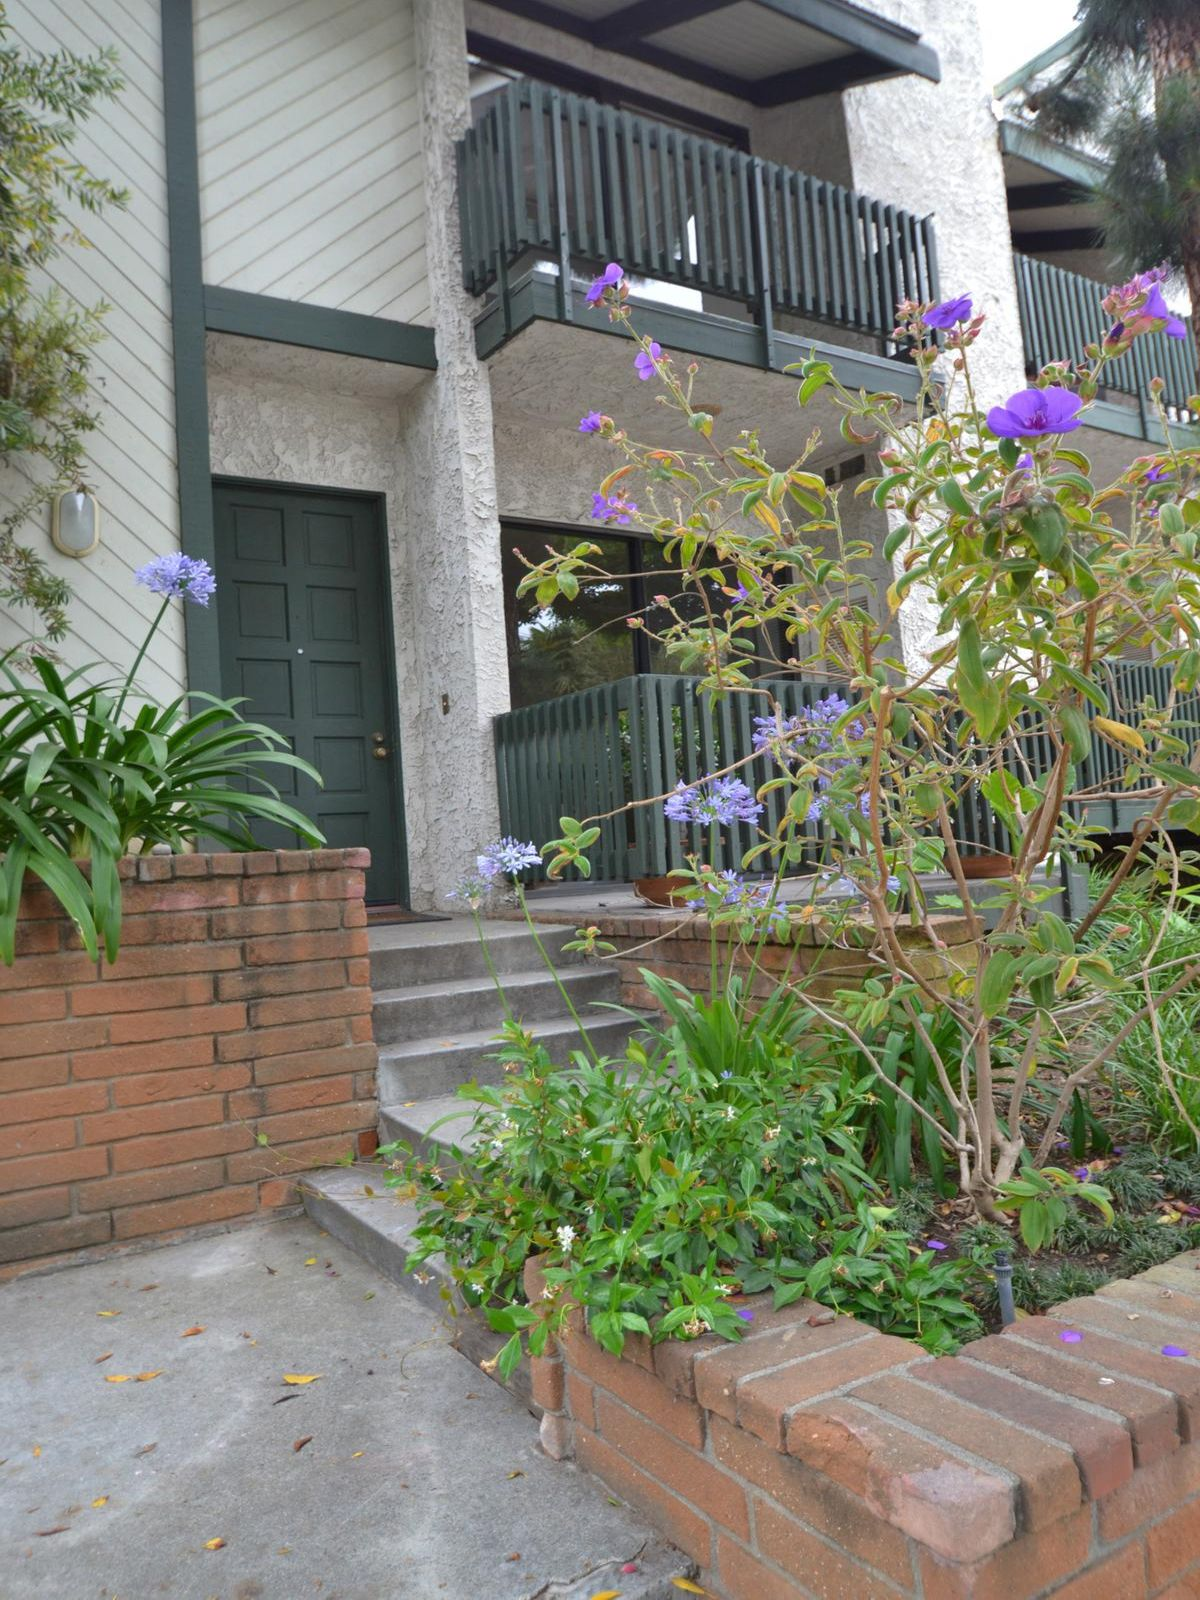 Three Bedroom Townhome, Santa Monica CA Townhouse - Los Angeles Real Estate